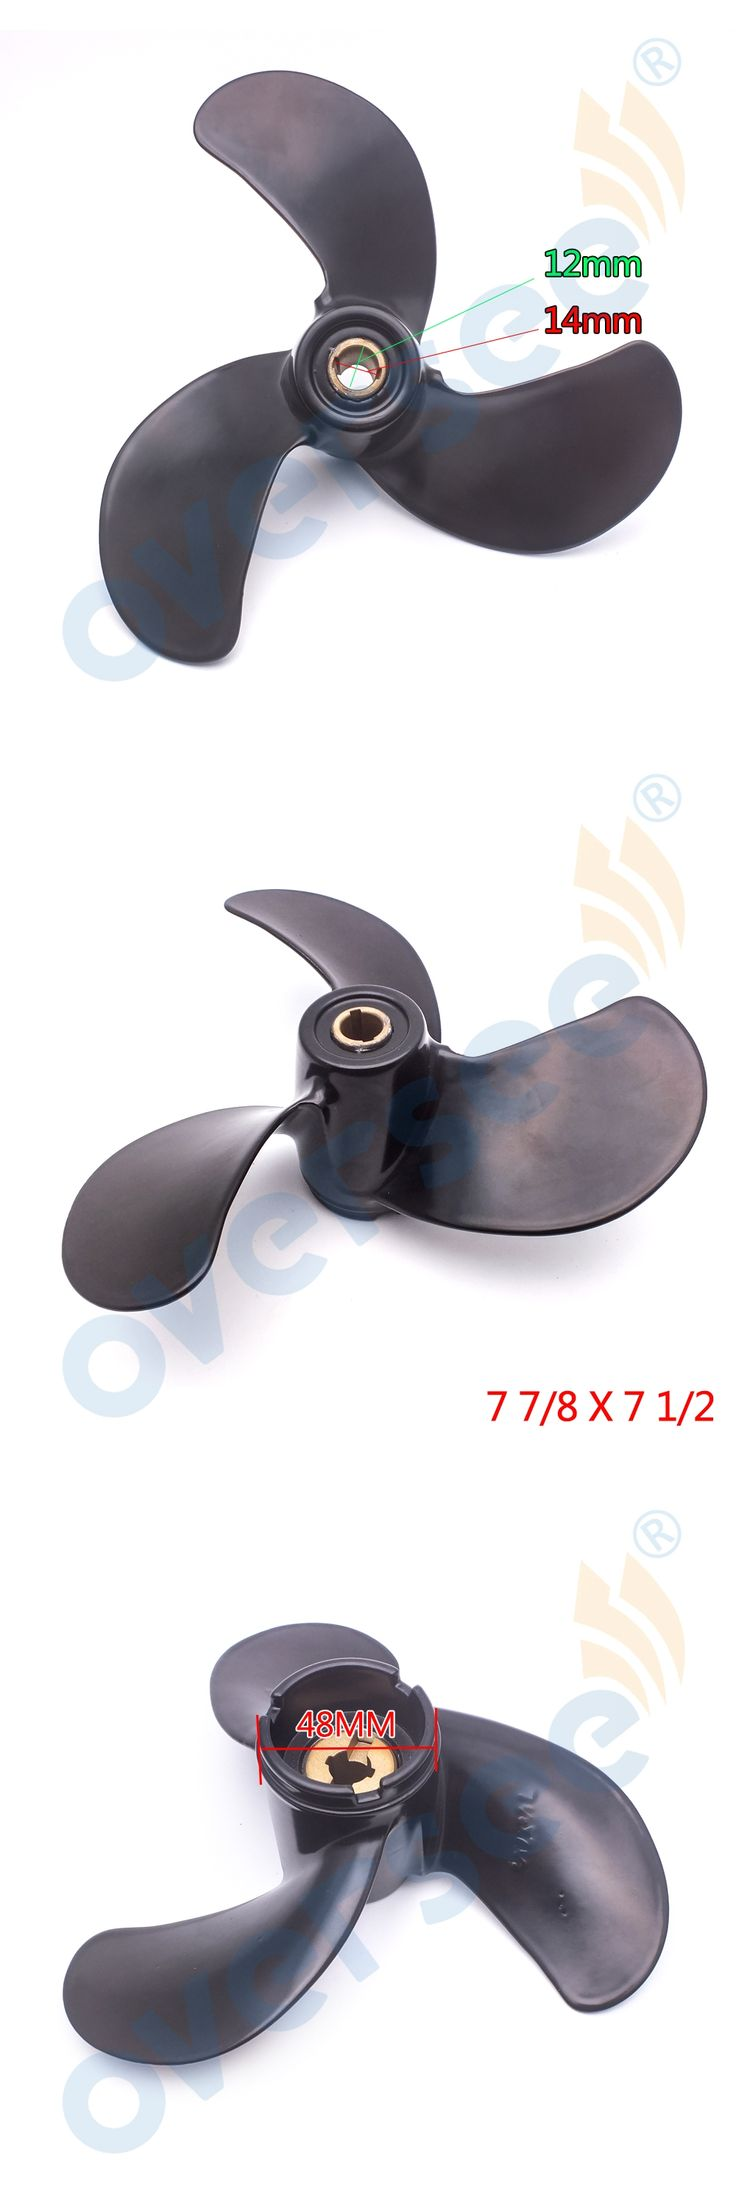 "For Honda Outboard BF5A Aluminium Outboard Propeller 4.5/5hp (7 7/8 x 7.5"")  58130-ZV1-841ZB"